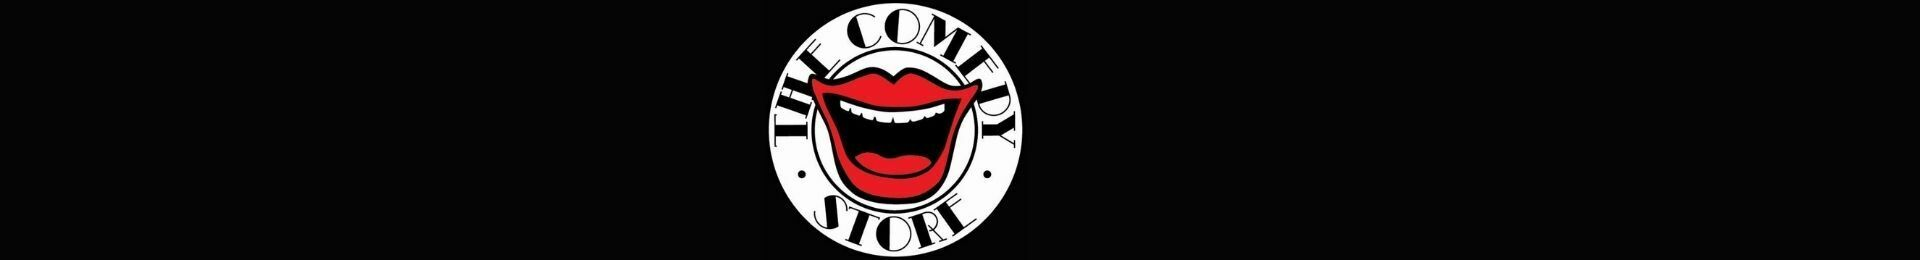 The Comedy Store Players banner image